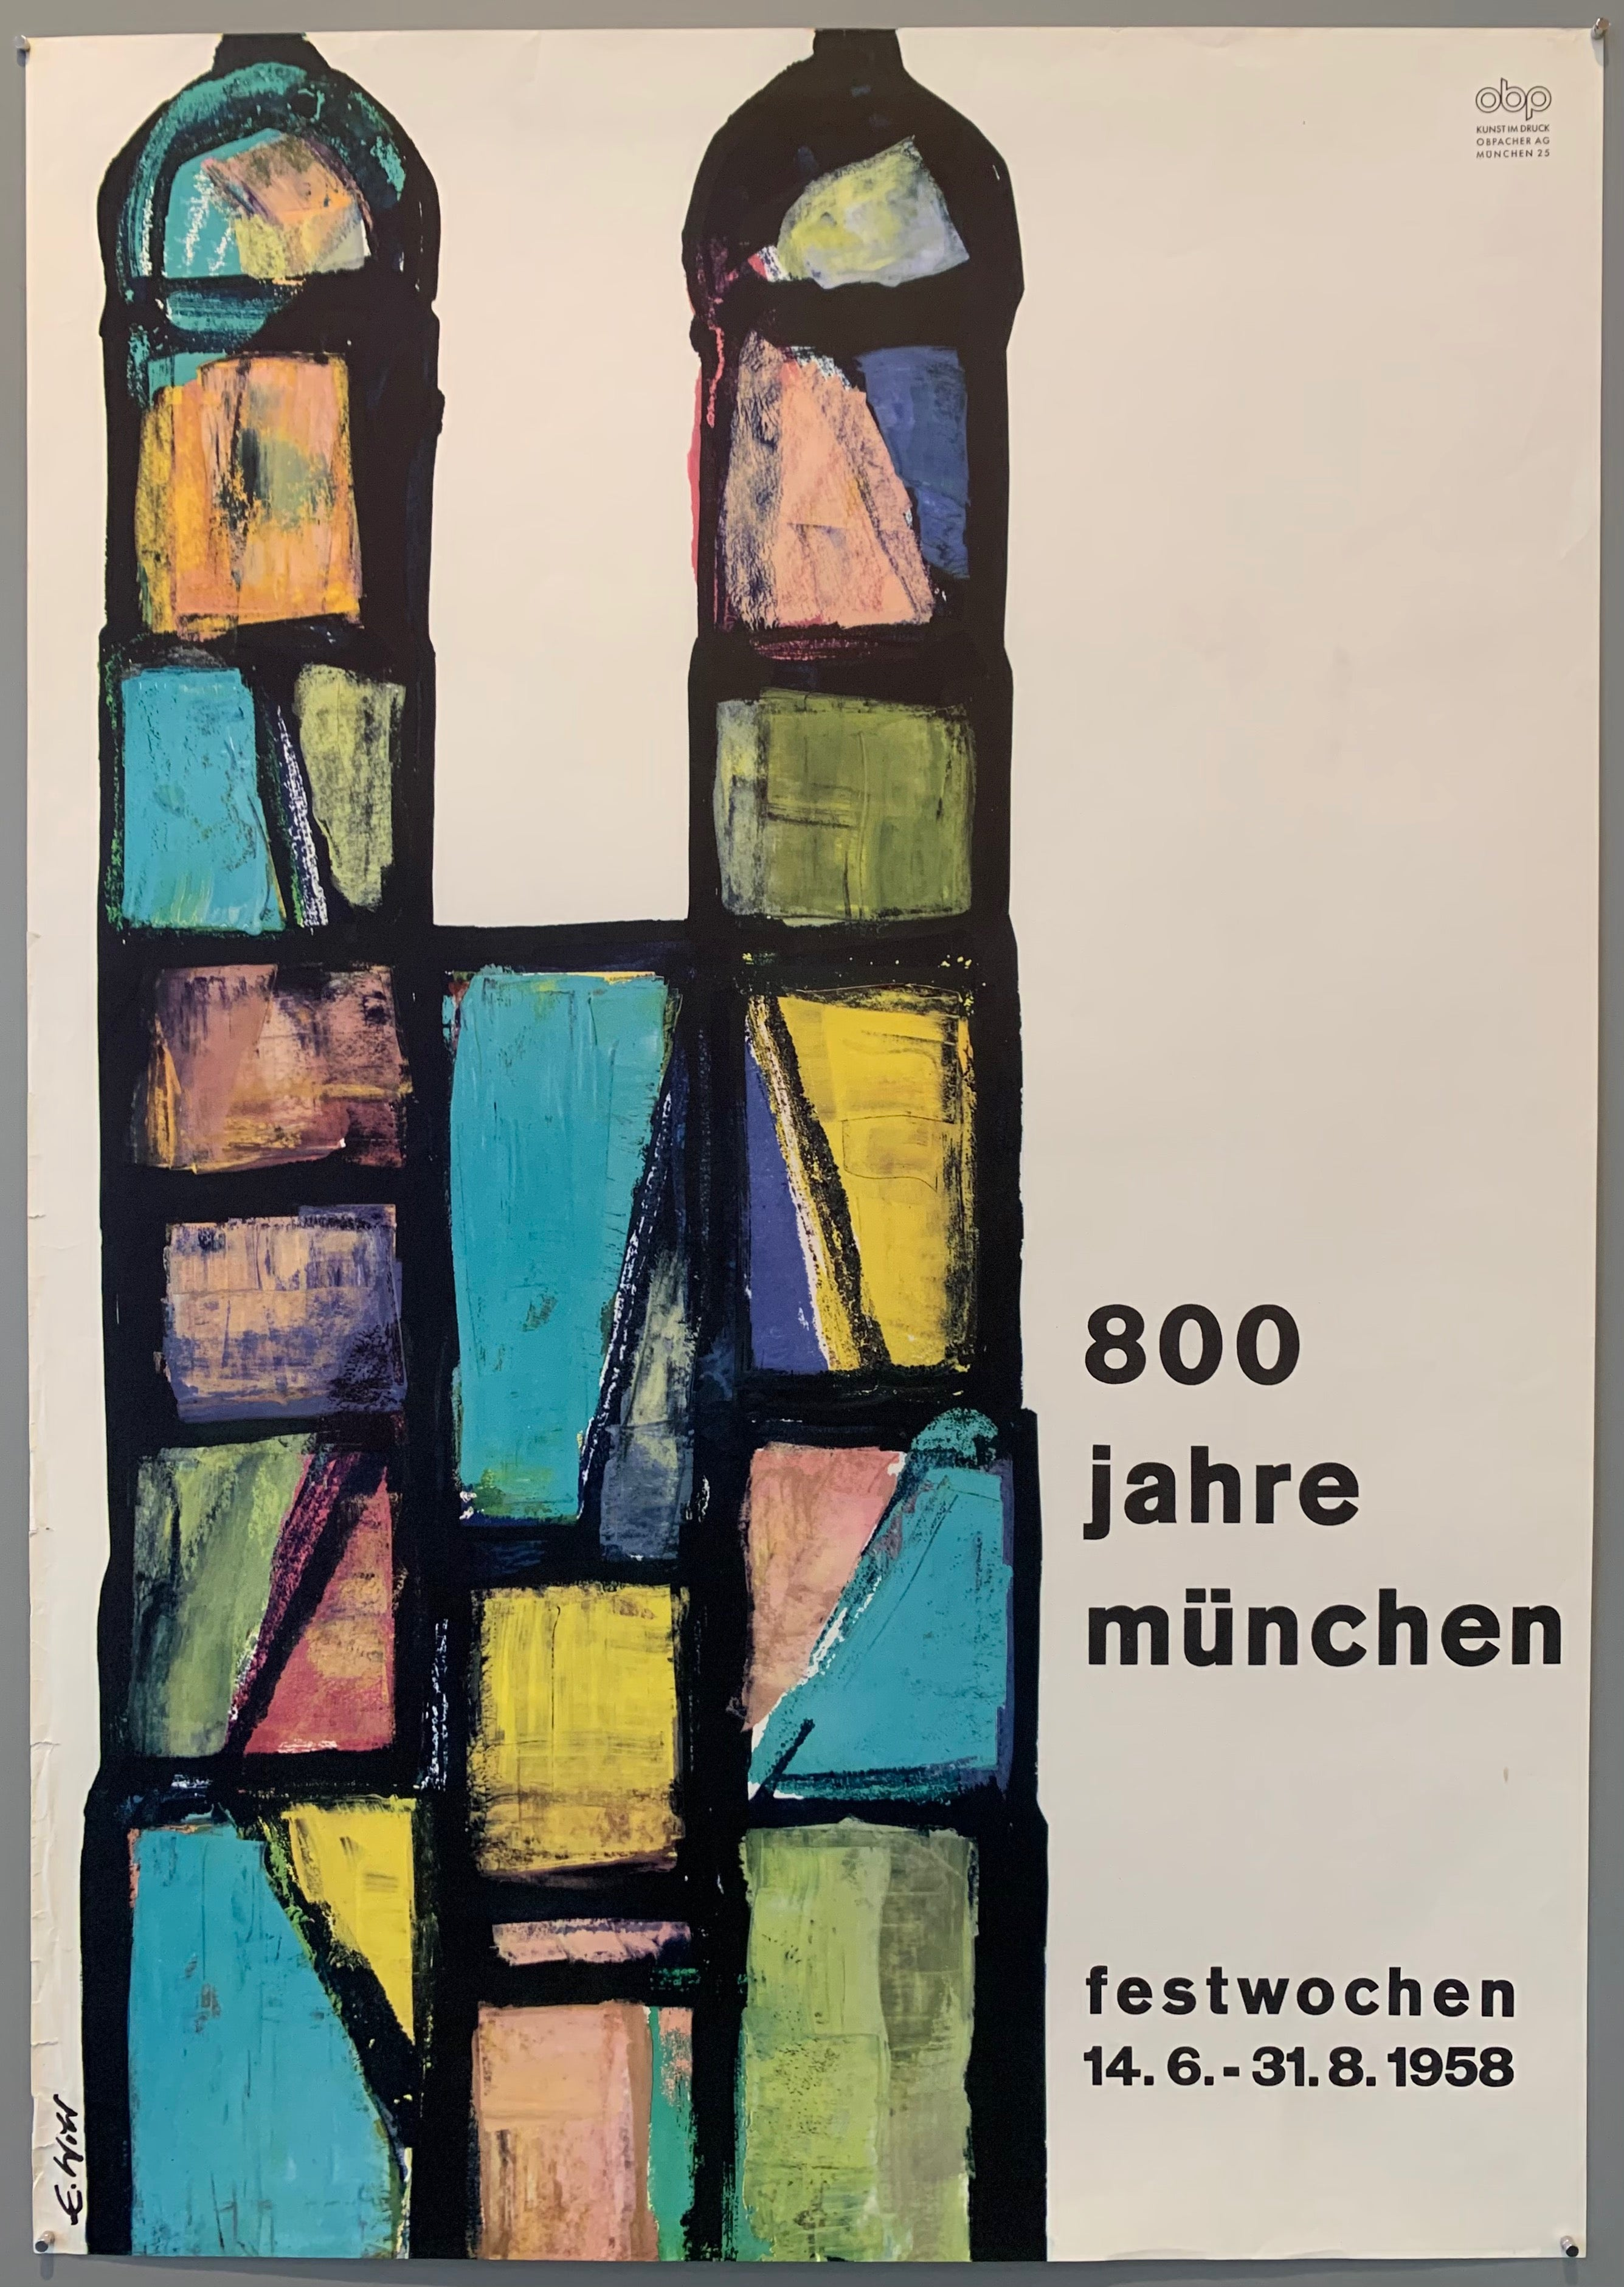 Shows an abstract painting of the Frauenkirche in Munich next to title over a white background.